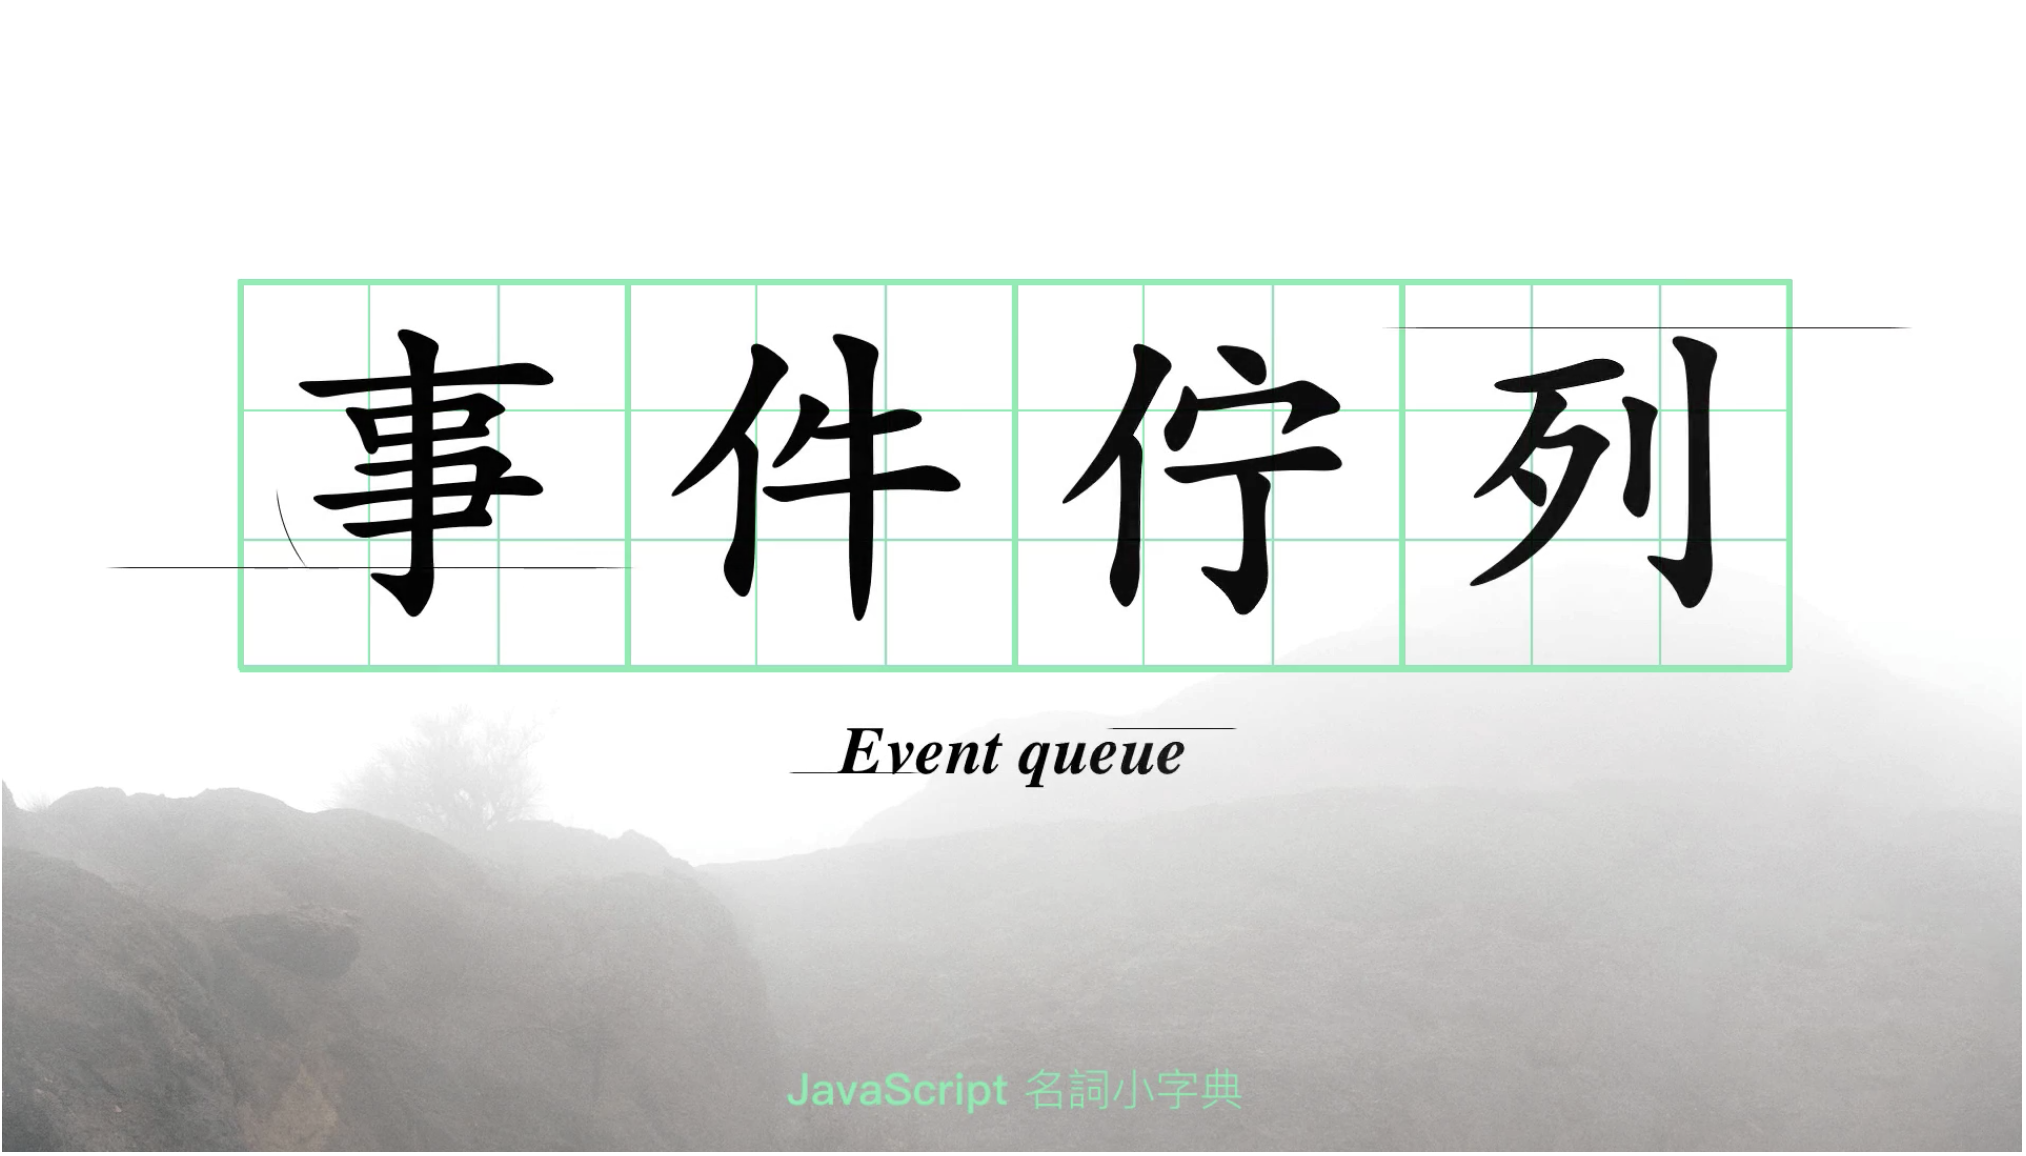 事件佇列 (Event queue)